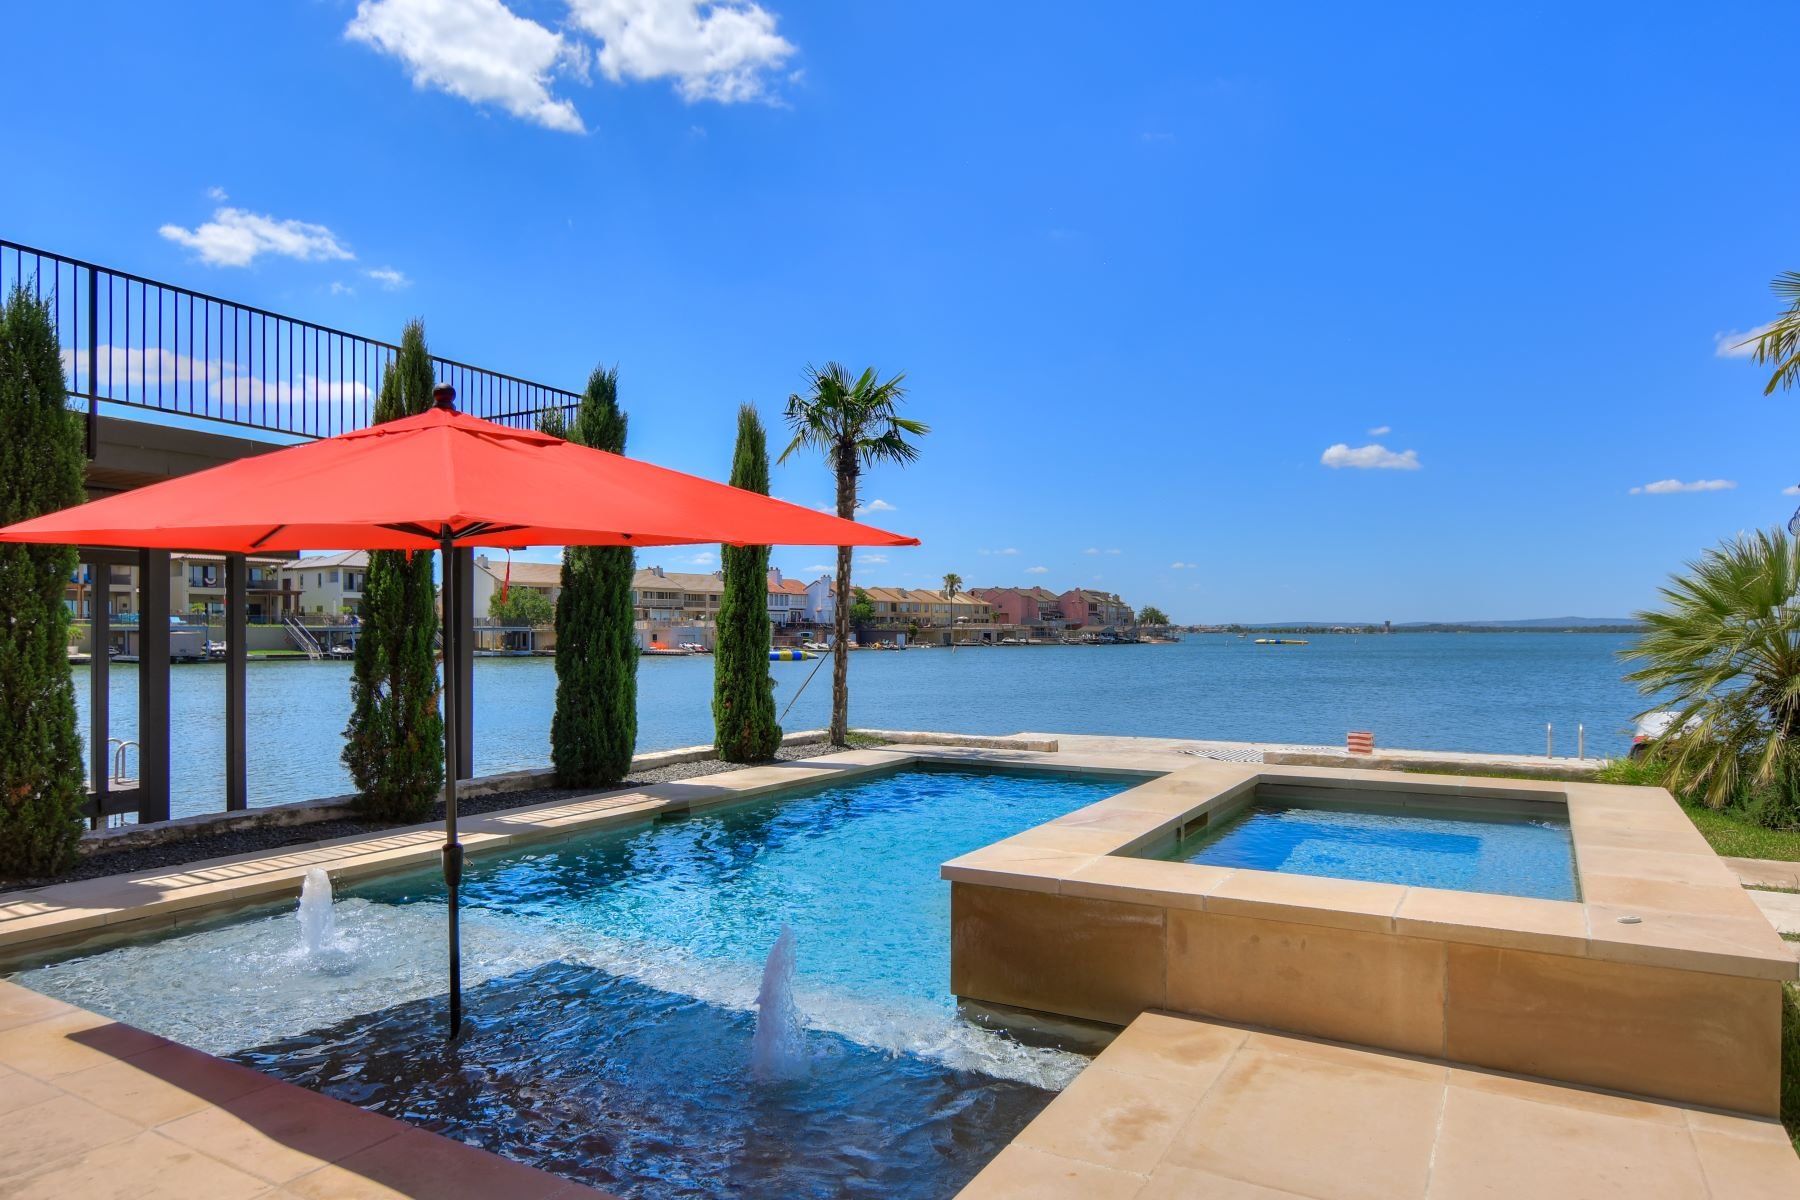 Single Family Homes for Active at Fabulous Estate on Stunning Lake LBJ 104 Bunny Run Lane on Lake LBJ Horseshoe Bay, Texas 78657 United States